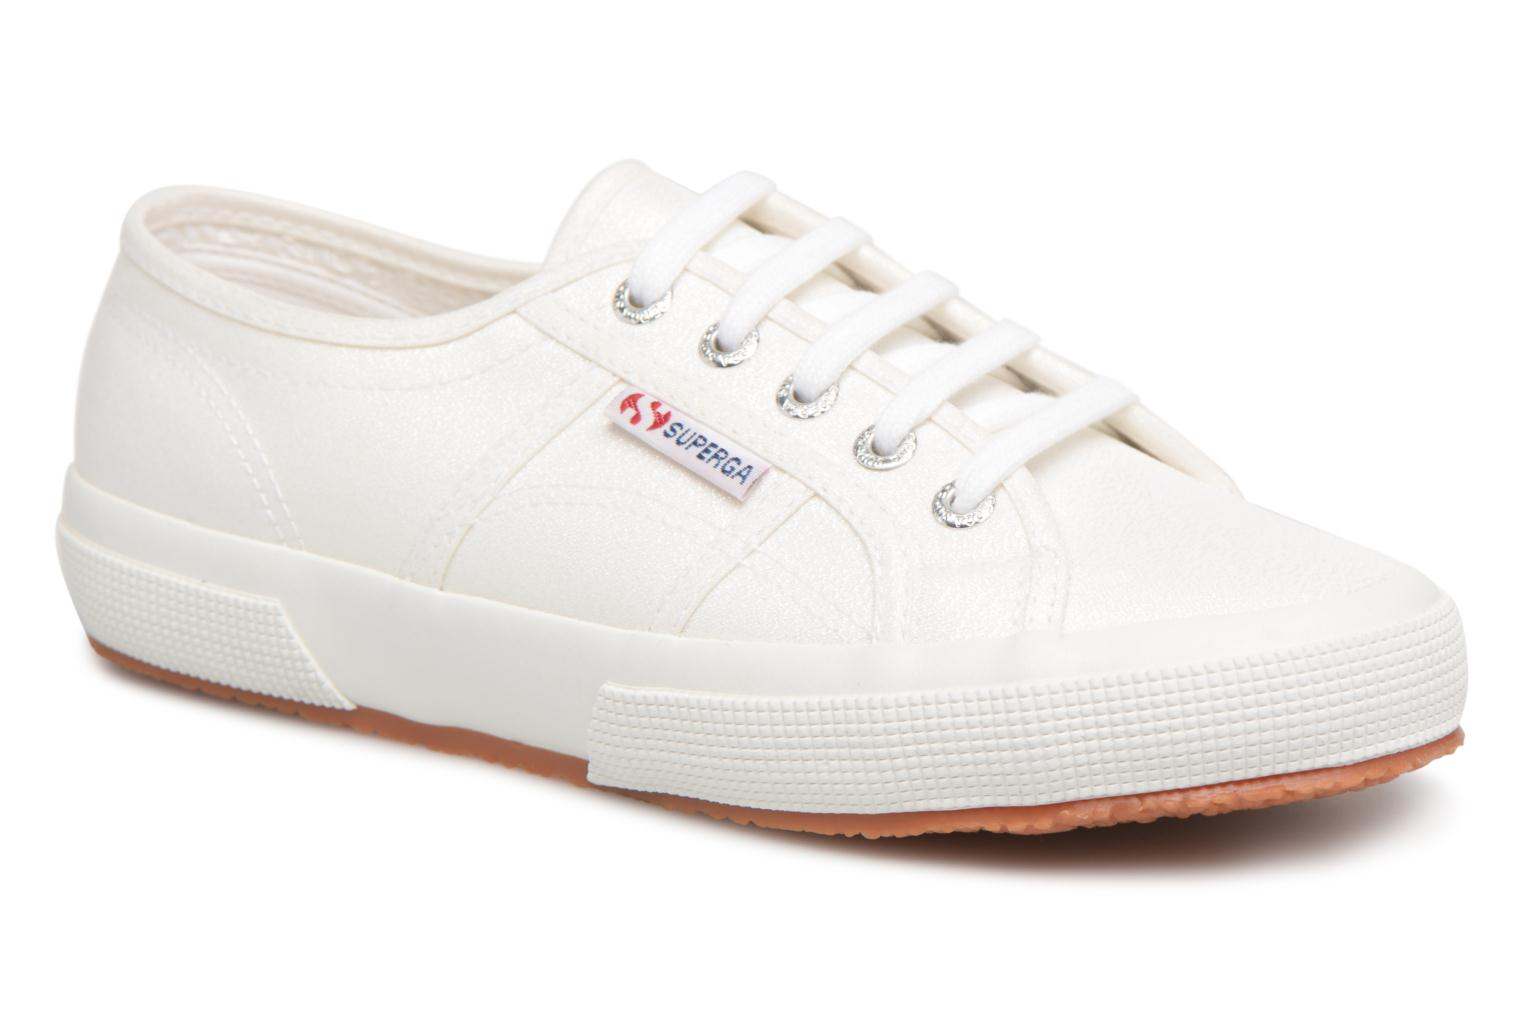 Superga 2750 Lame W (Blanc) - Baskets en Más cómodo Chaussures casual sauvages